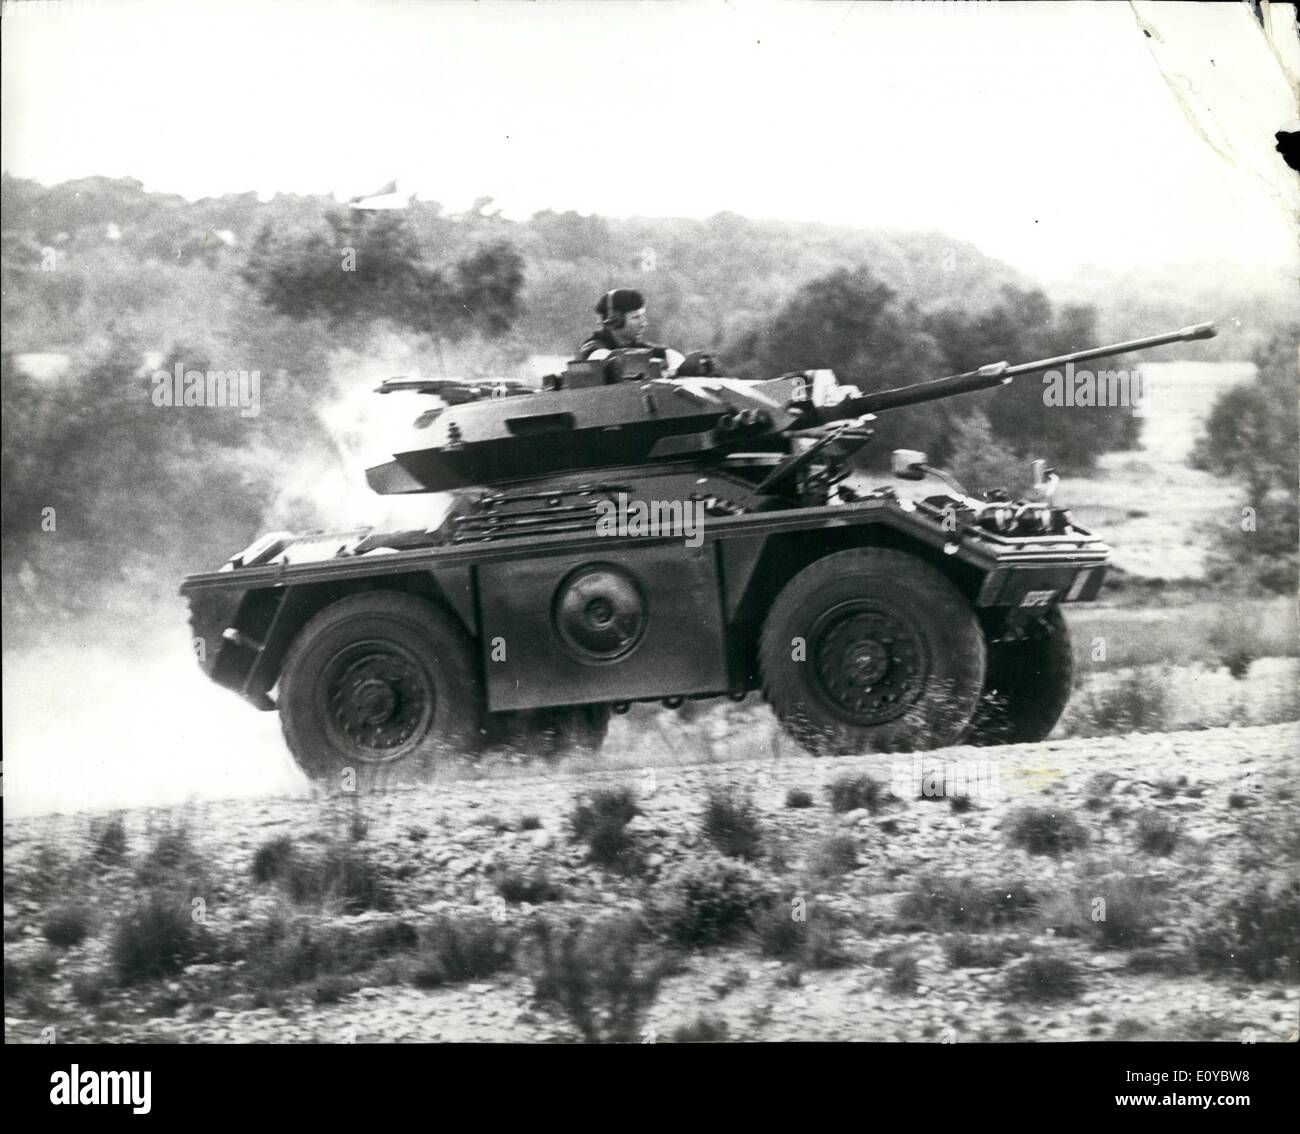 Oct. 10, 1969 - The New Fox Combat Reconnaissance Vehicle: Produced in conjunction with the Ministry of Defence and the Fighting vehicles Research and Development Establishment FOX continues Daimler's long association with the British Army. Built almost entirely of aluminium armour supplied by Alean Industries in has been designed to meet the military requirements of the 1970's and 1980's for a light-weight armoured reconnaissance vehicle of compact proportions capable of undertaking a wide variety of roles, including some which previously required larger and heavier vehicles - Stock Image